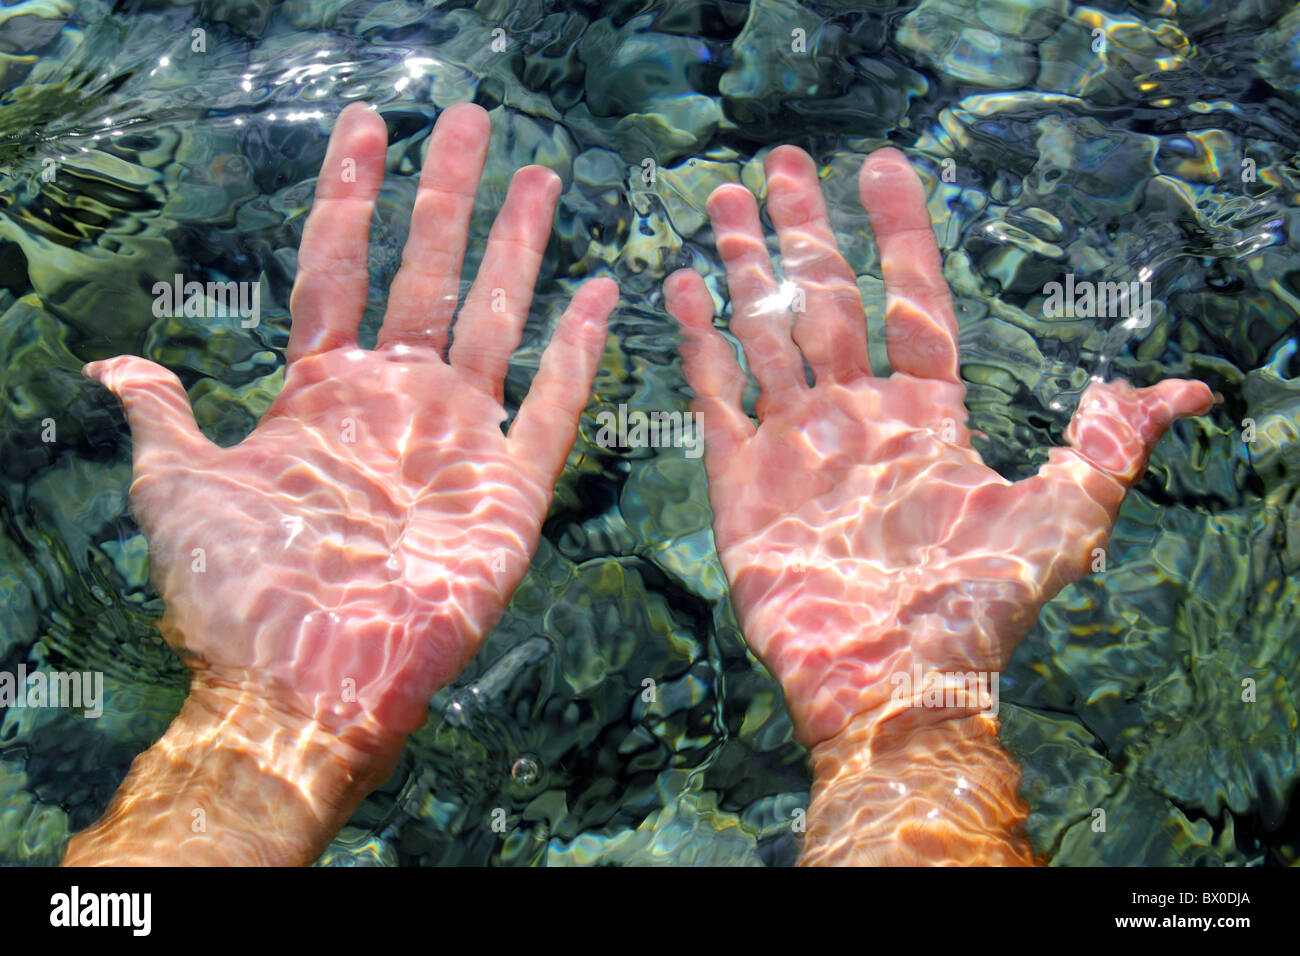 hands underwater river water wavy distorted shapes - Stock Image